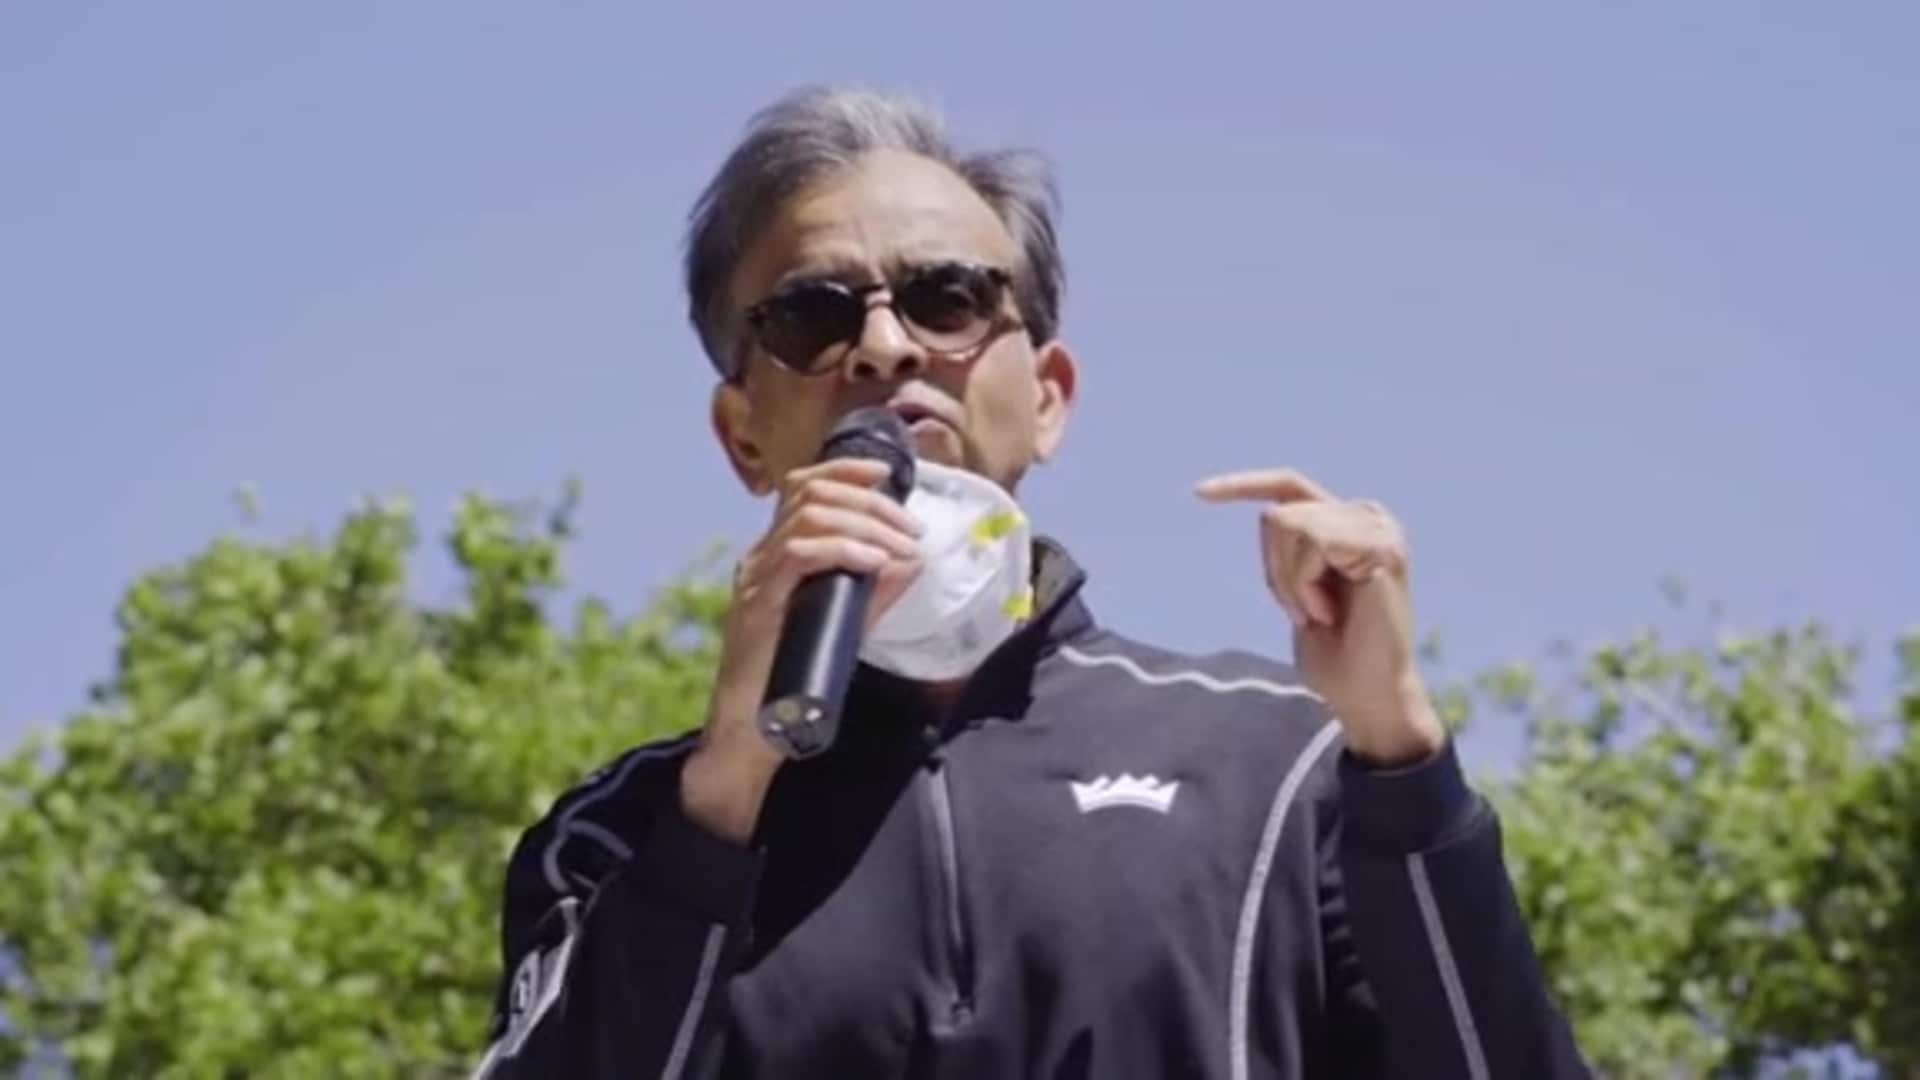 Vivek Ranadivé Speaks at Black Lives Matter Protest